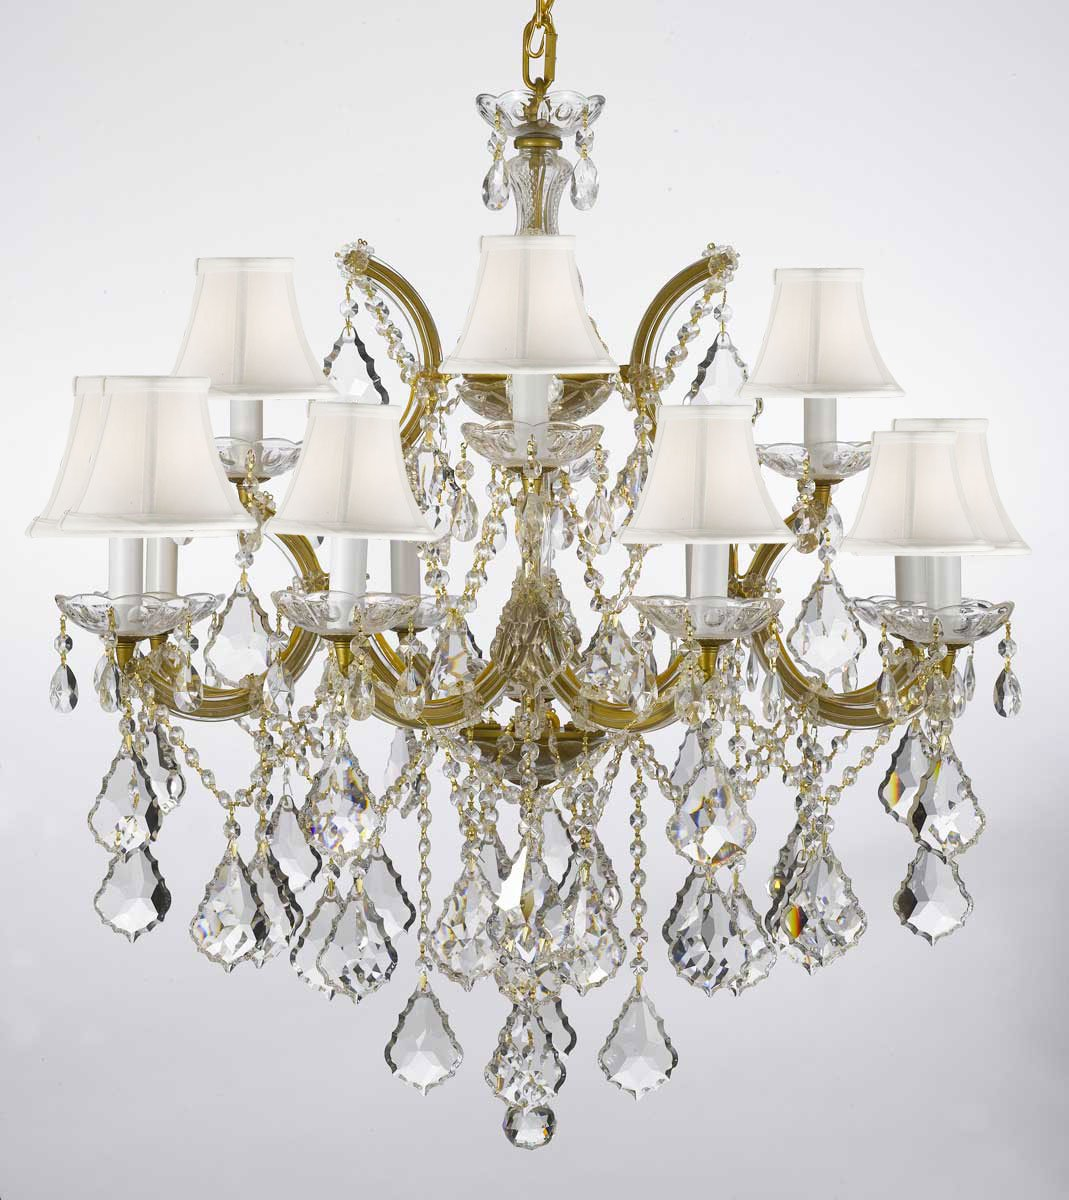 Chandelier Lighting Crystal Chandeliers With White Shades